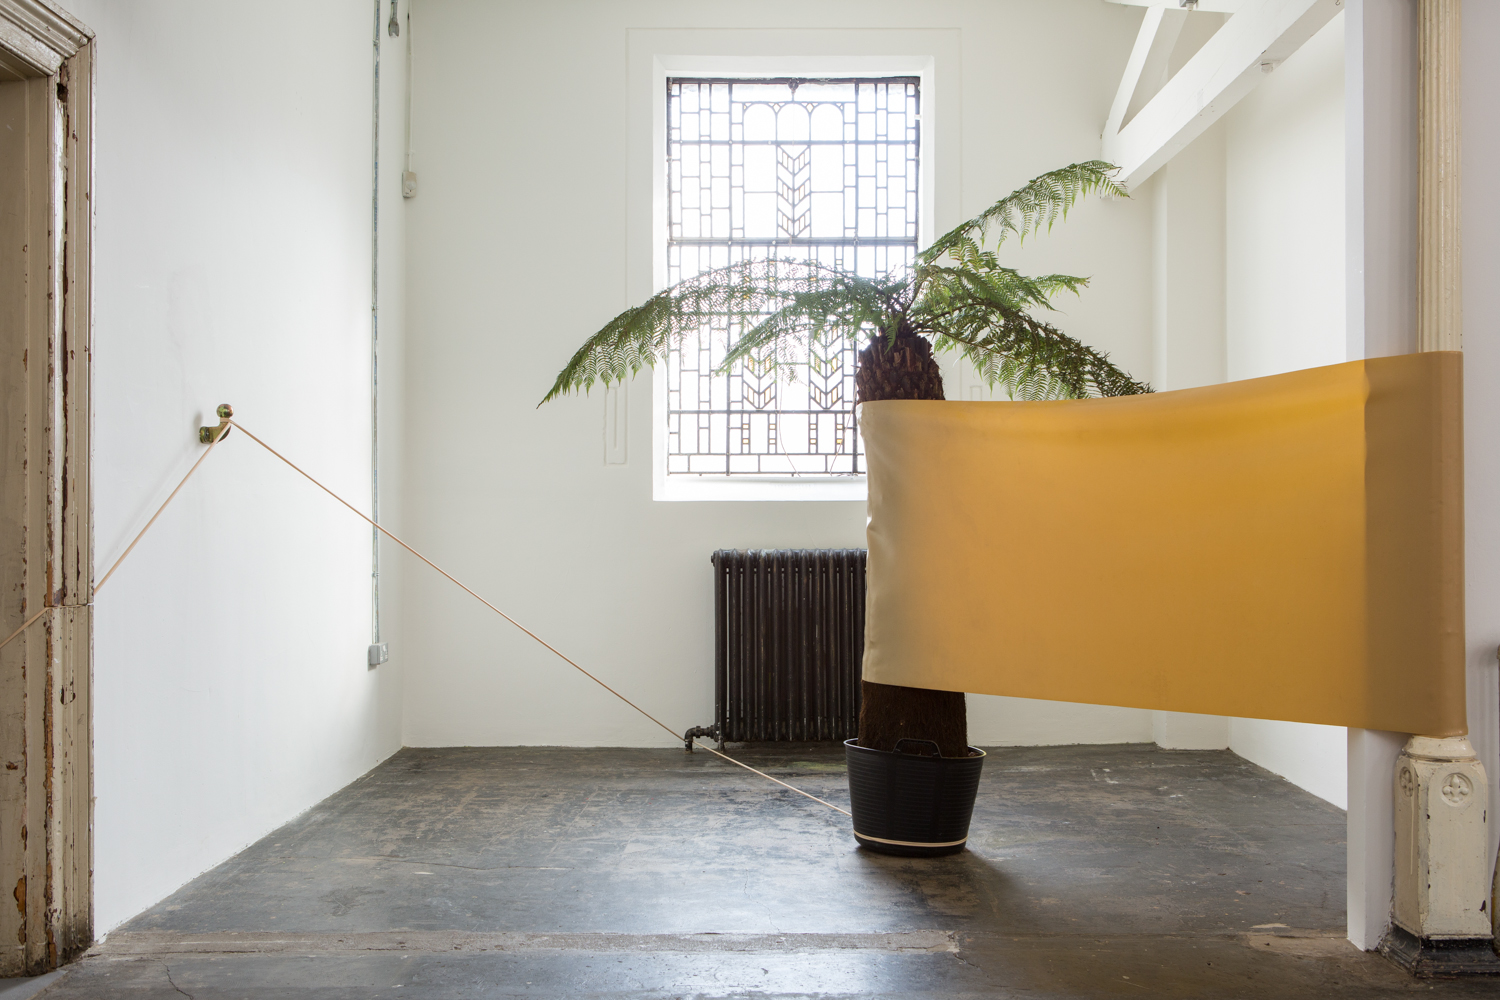 Zachary Susskind  Monument , 2015 Gum, architectural column, potted tree fern Dimensions variable